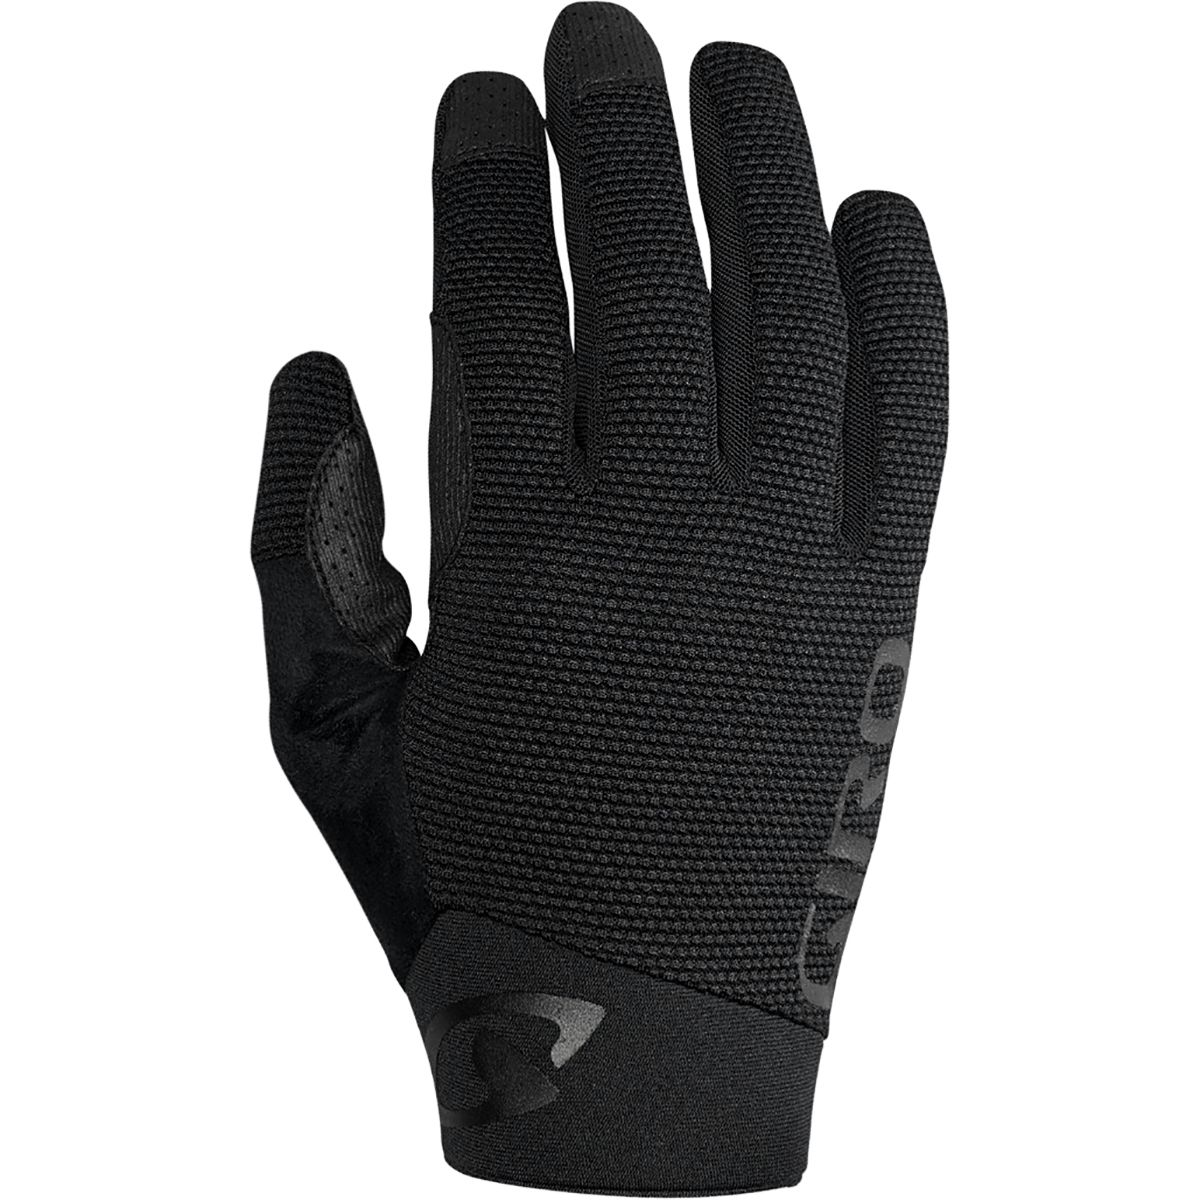 Giro Rivet II Glove Men's